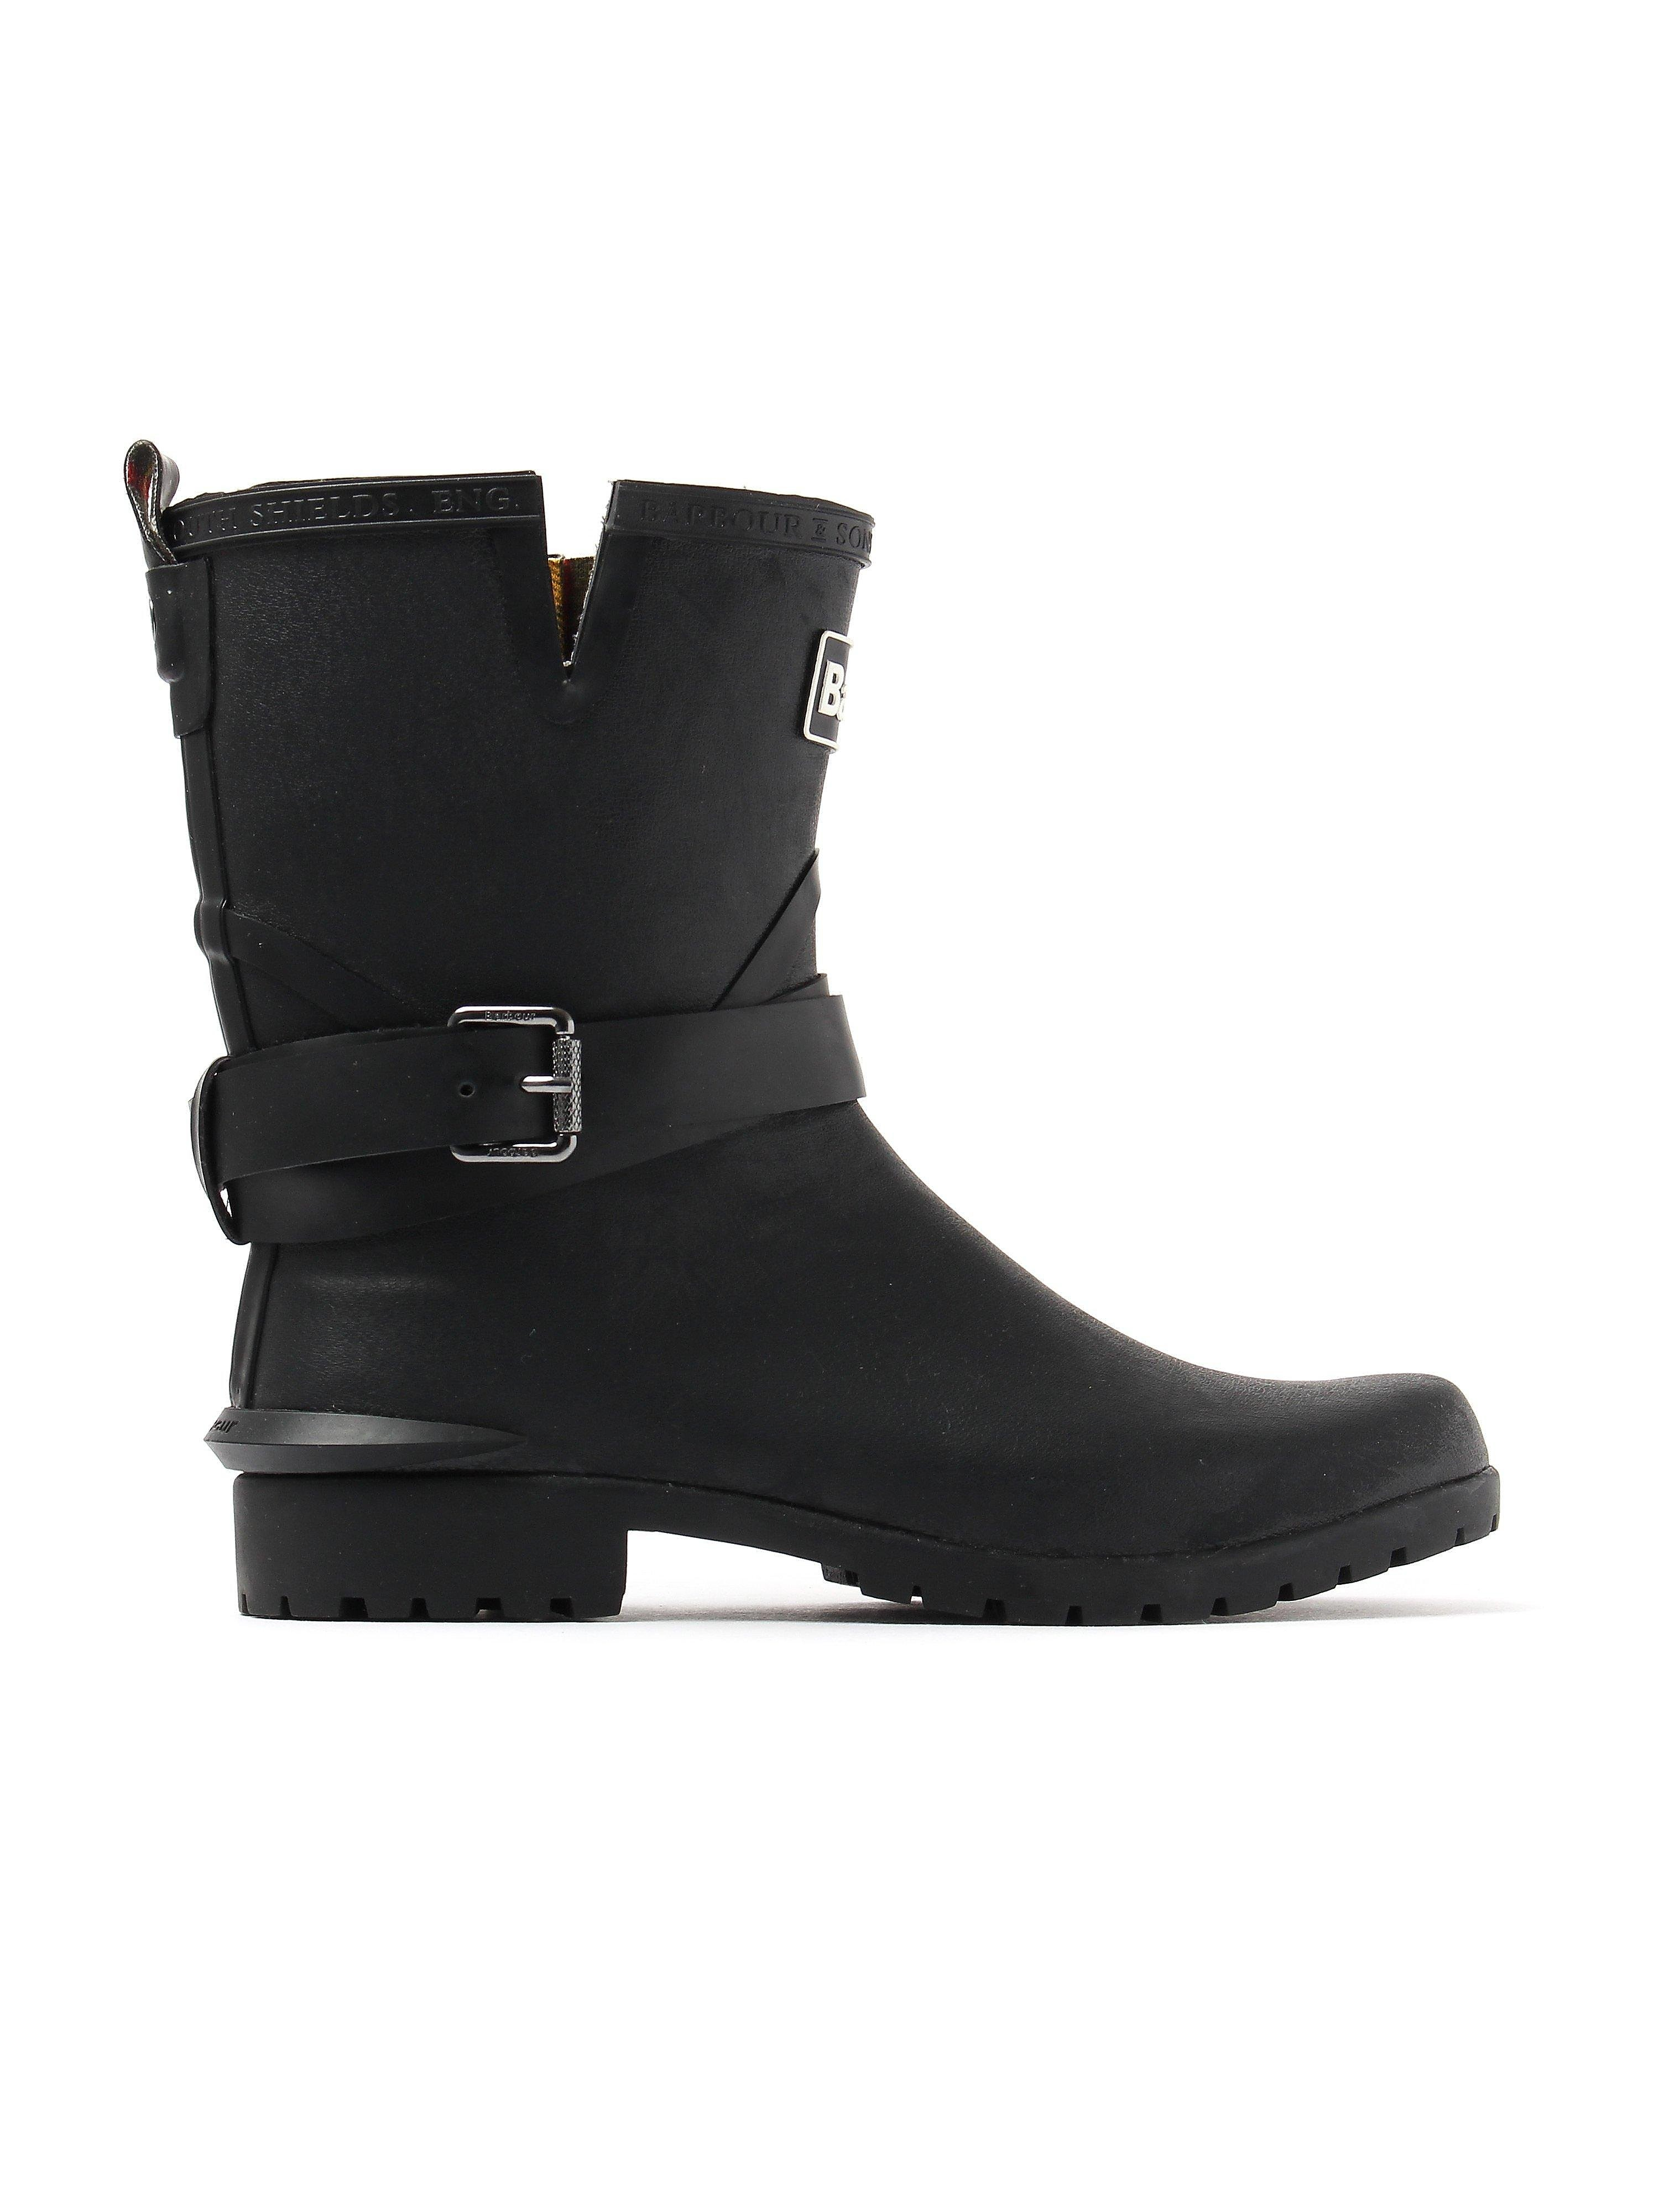 Barbour Women's Biker Buckle Rubber Wellington Boots - Black